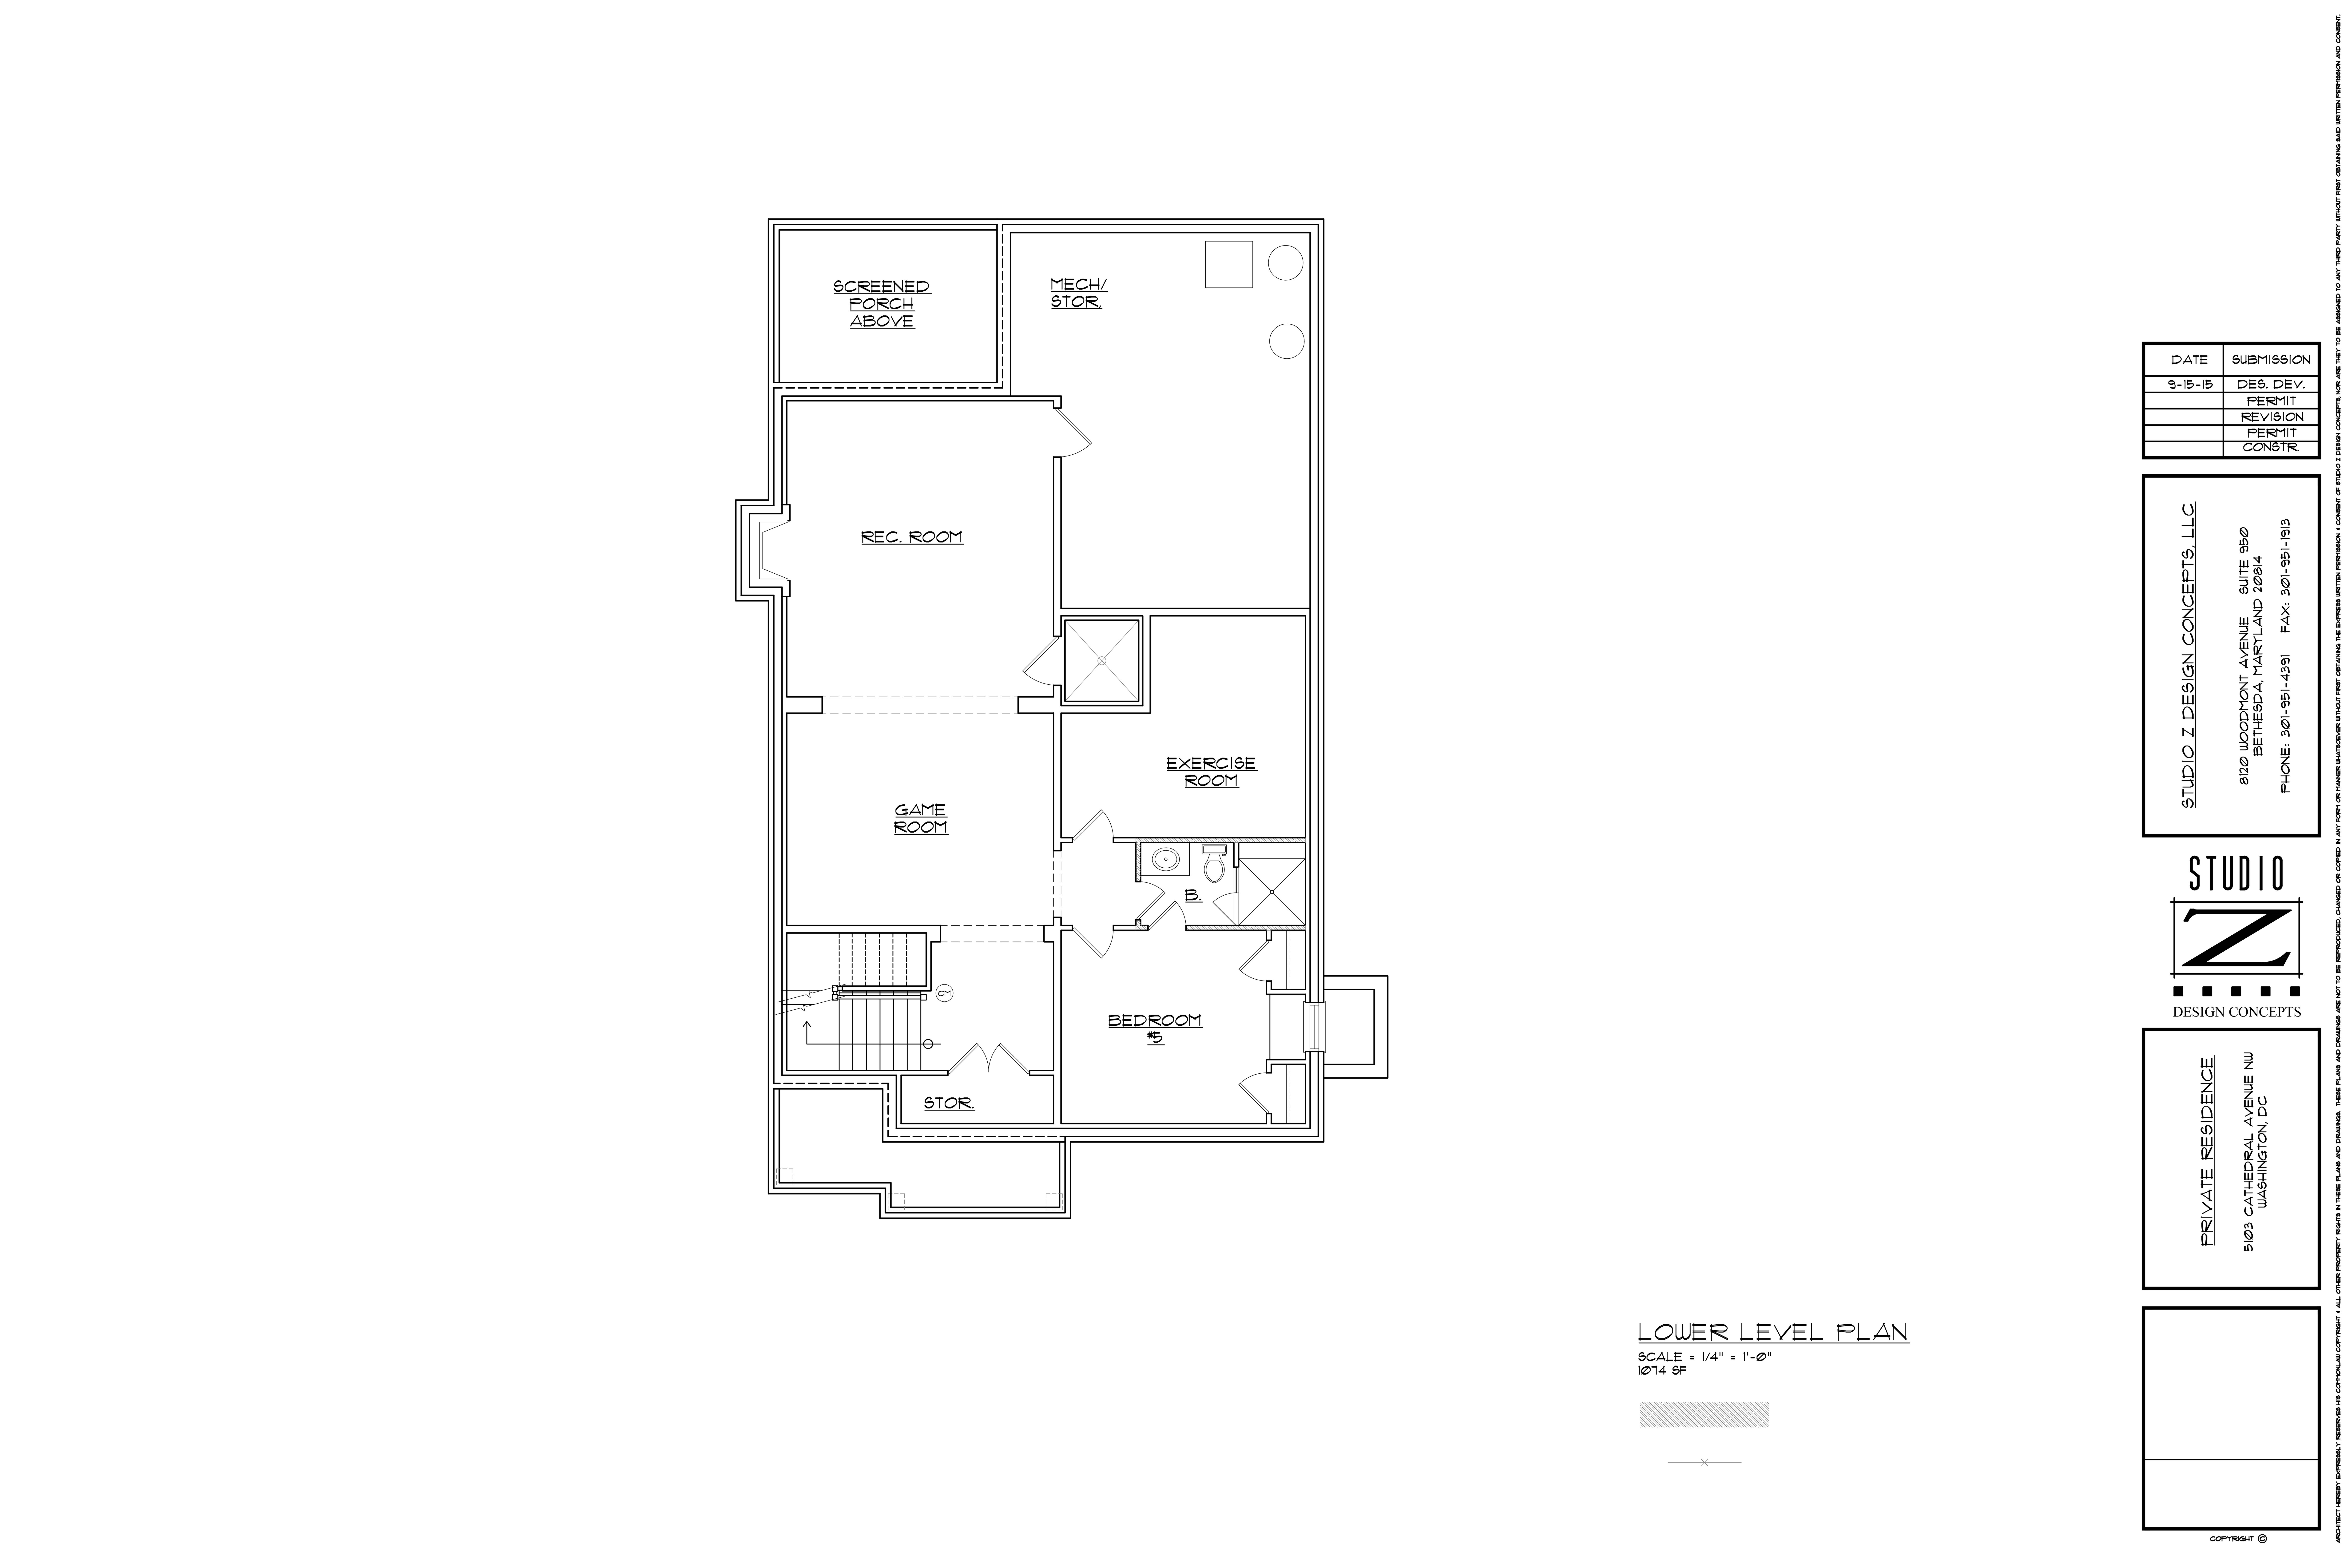 5103 Cathedral Ave NW - Floor Plans-A0001_1